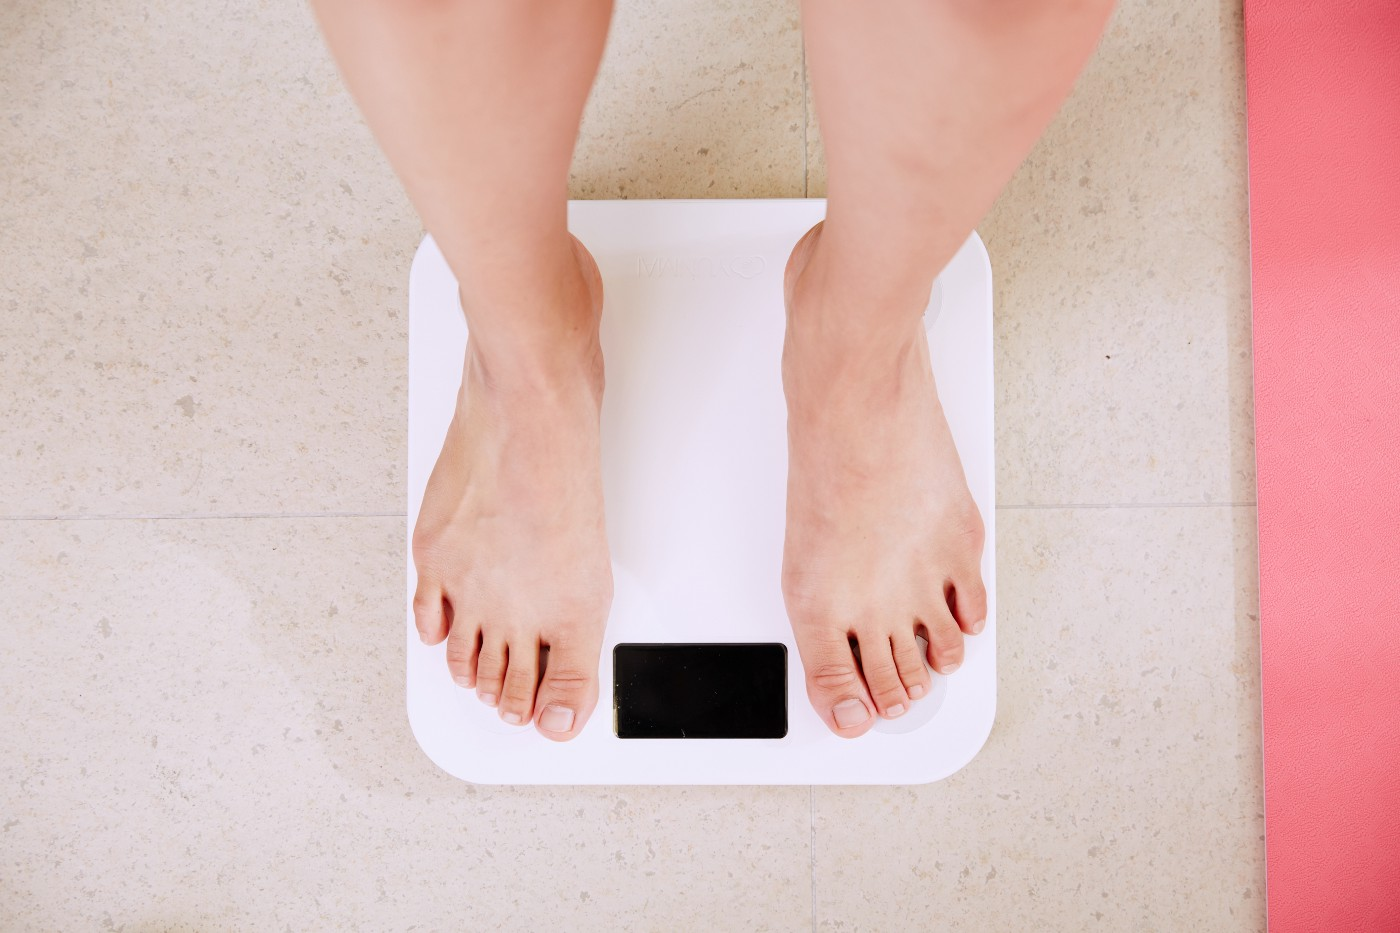 Standing on weighing scale.